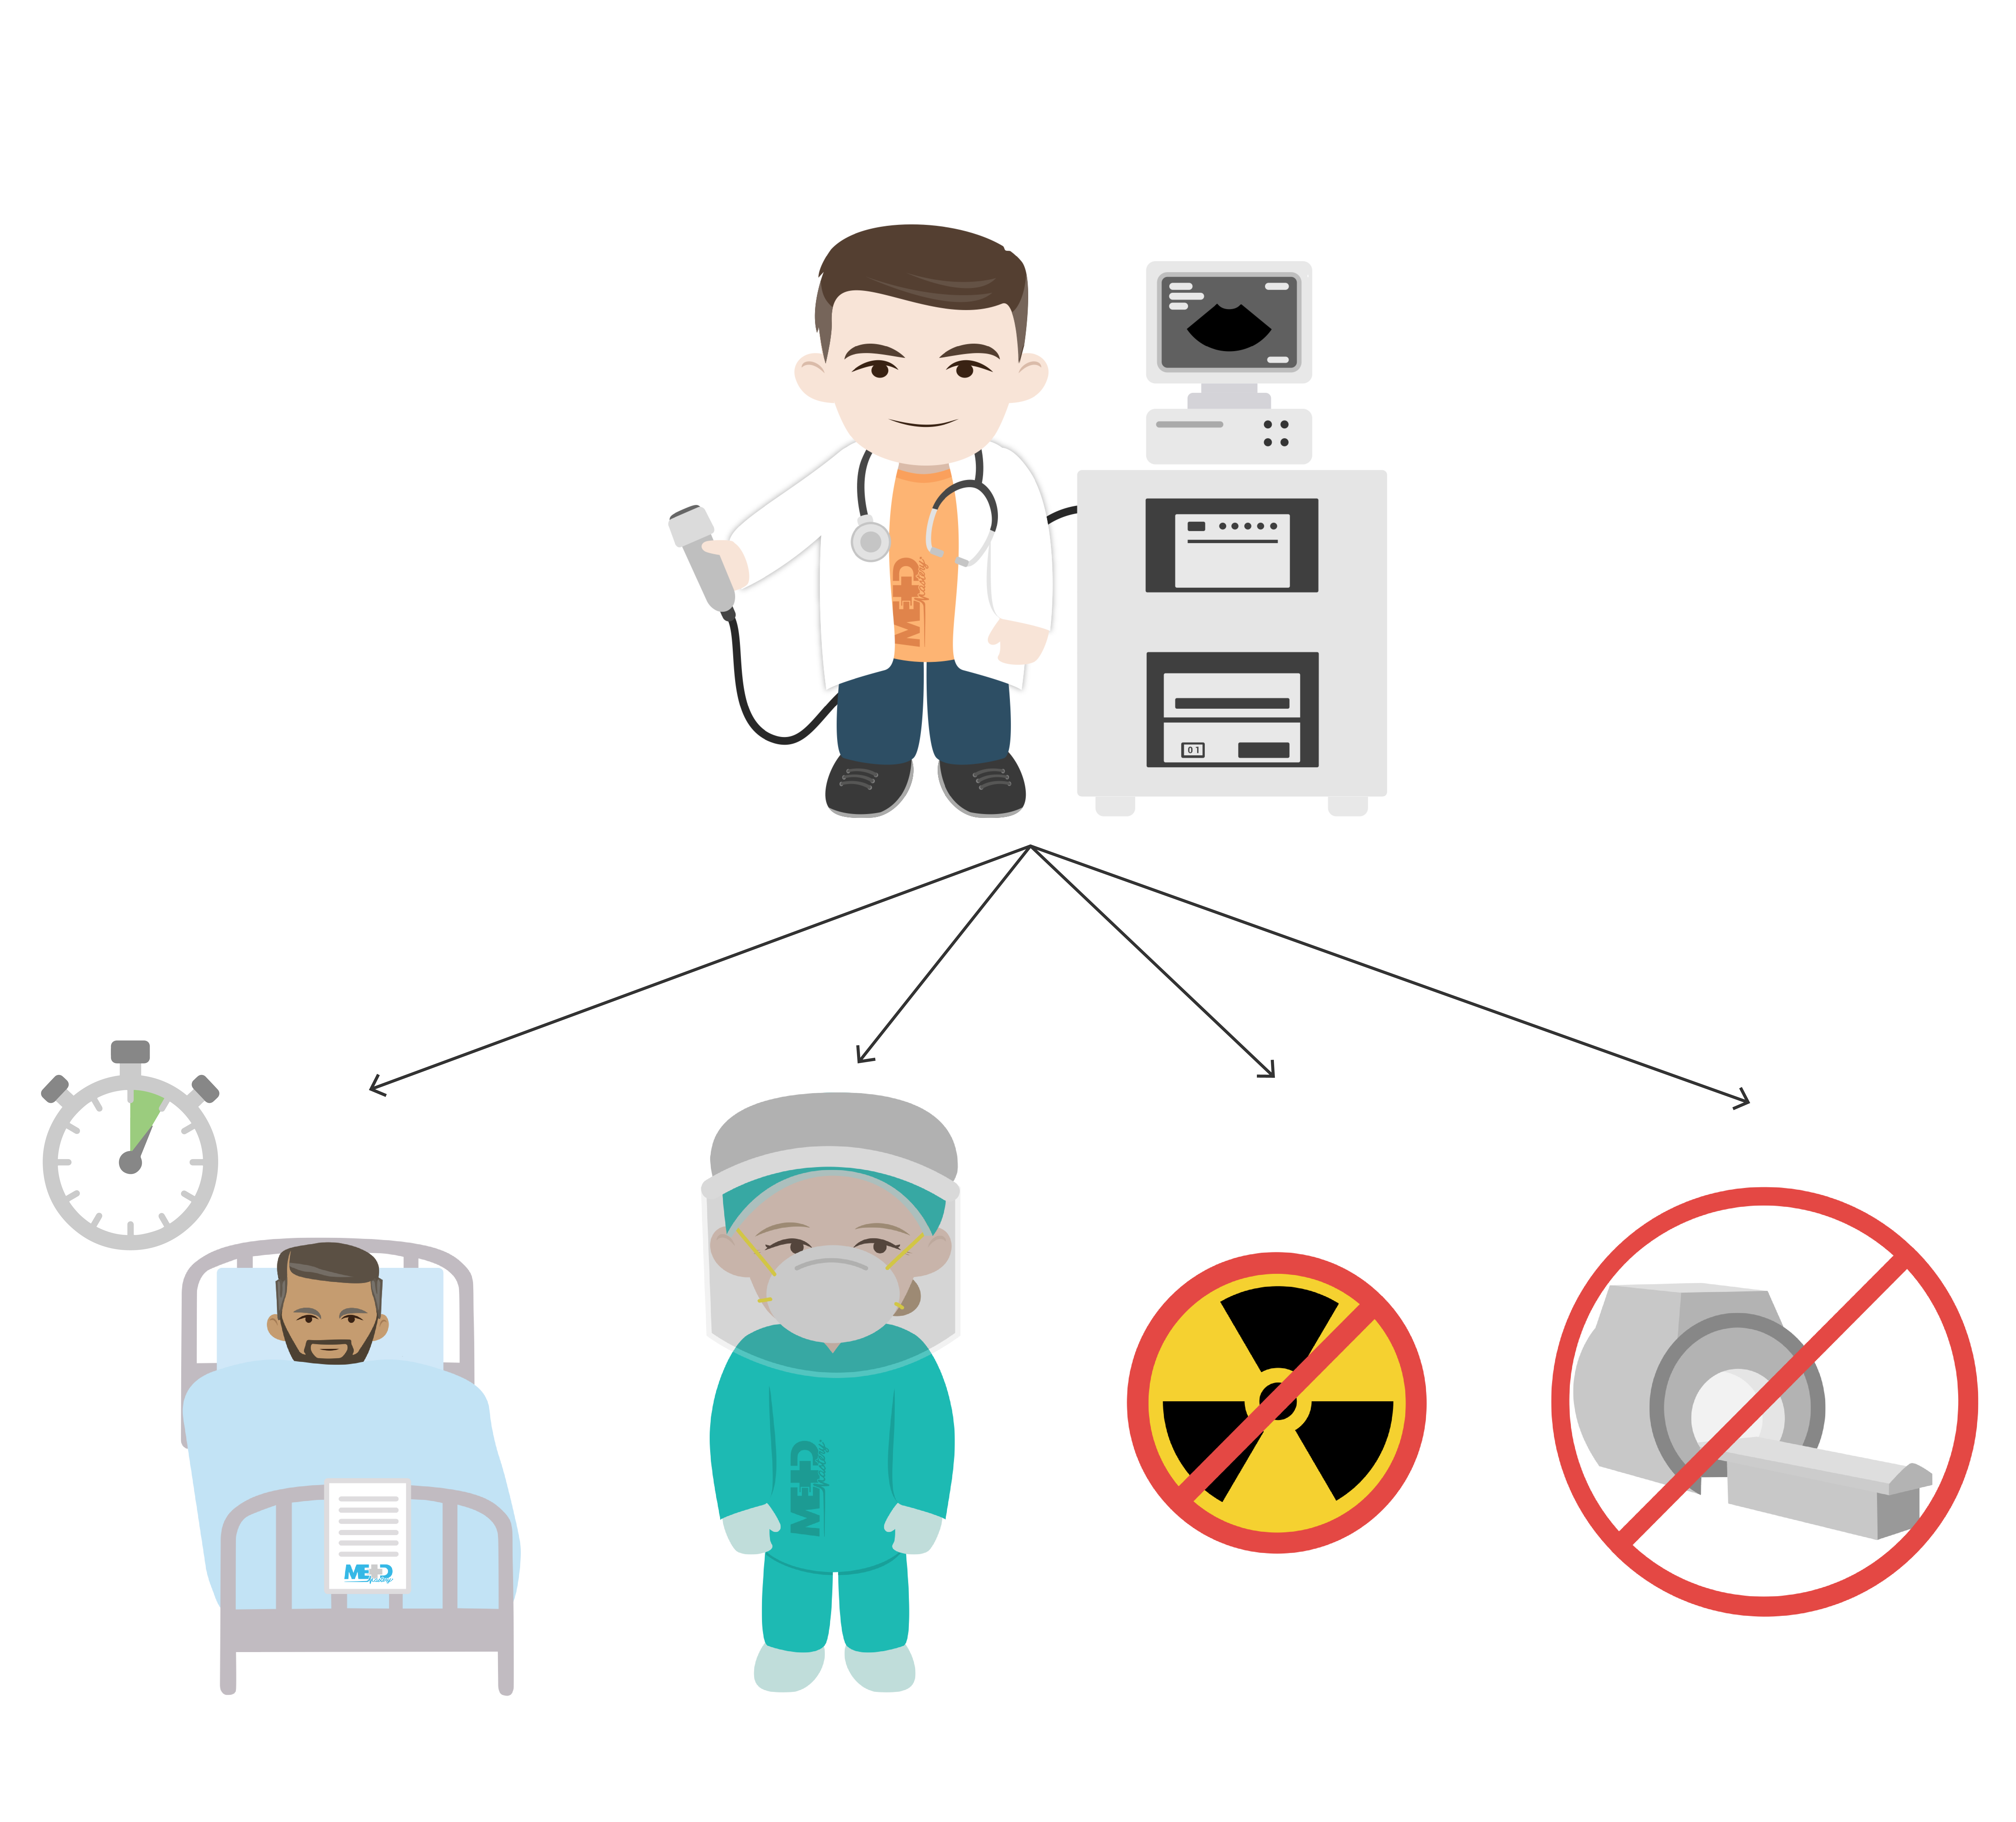 Multi-component illustration of a doctor using ultrasound with arrows pointing to a patient in bed, crossed-out radioactive symbol, doctor in personal protective equipment (PPE), and crossed-out computed tomography (CT) scan.